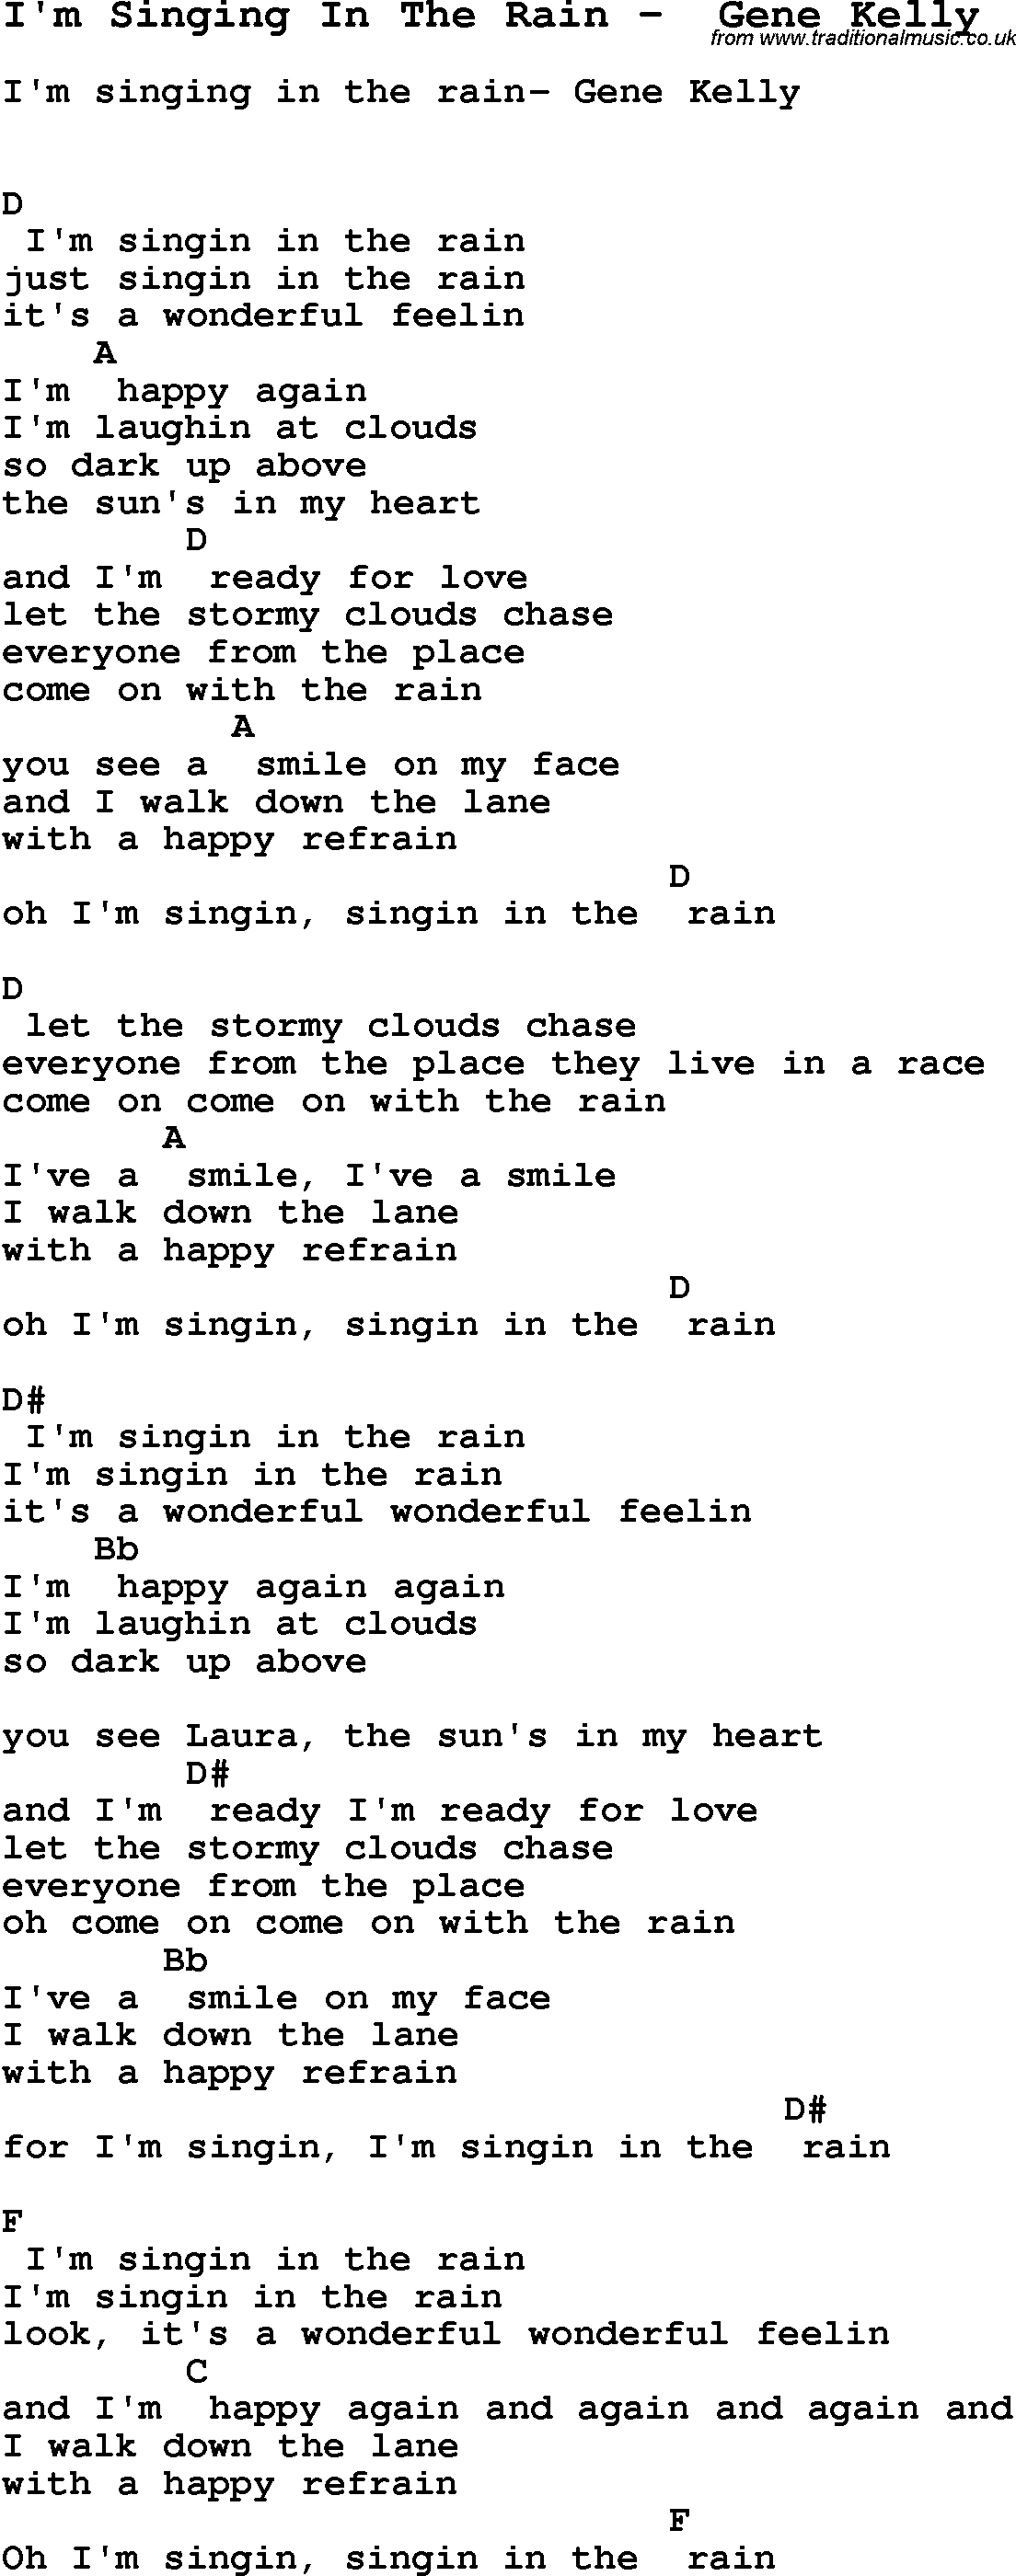 Singing in the rain guitar chords